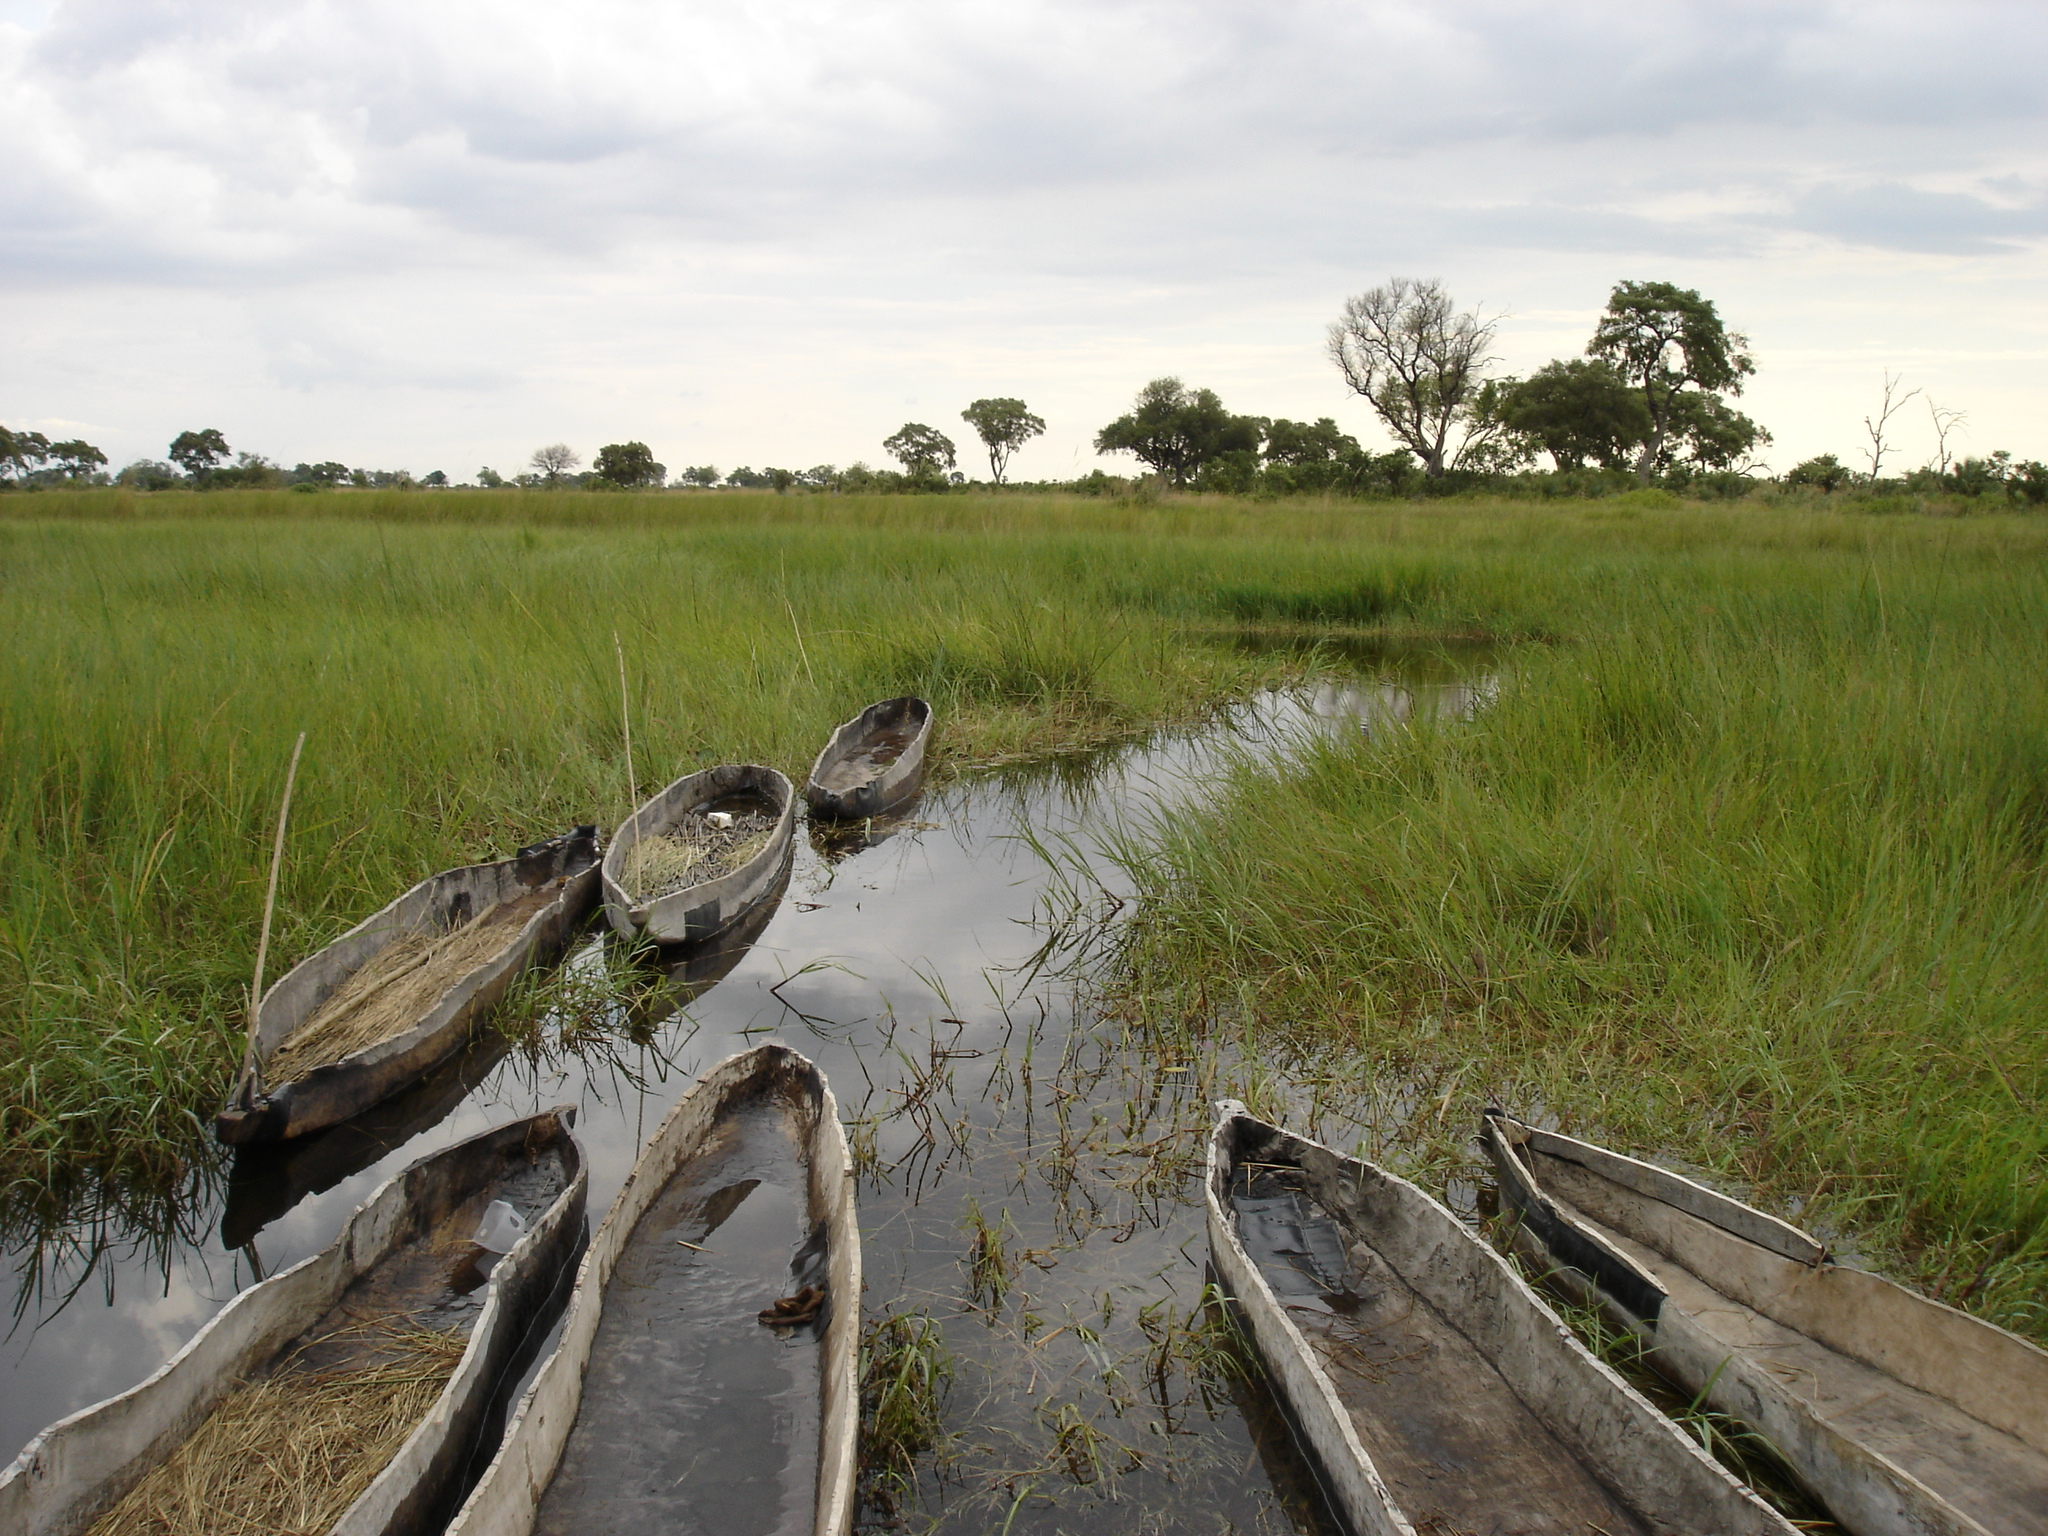 Mokoros in the Okavango Delta